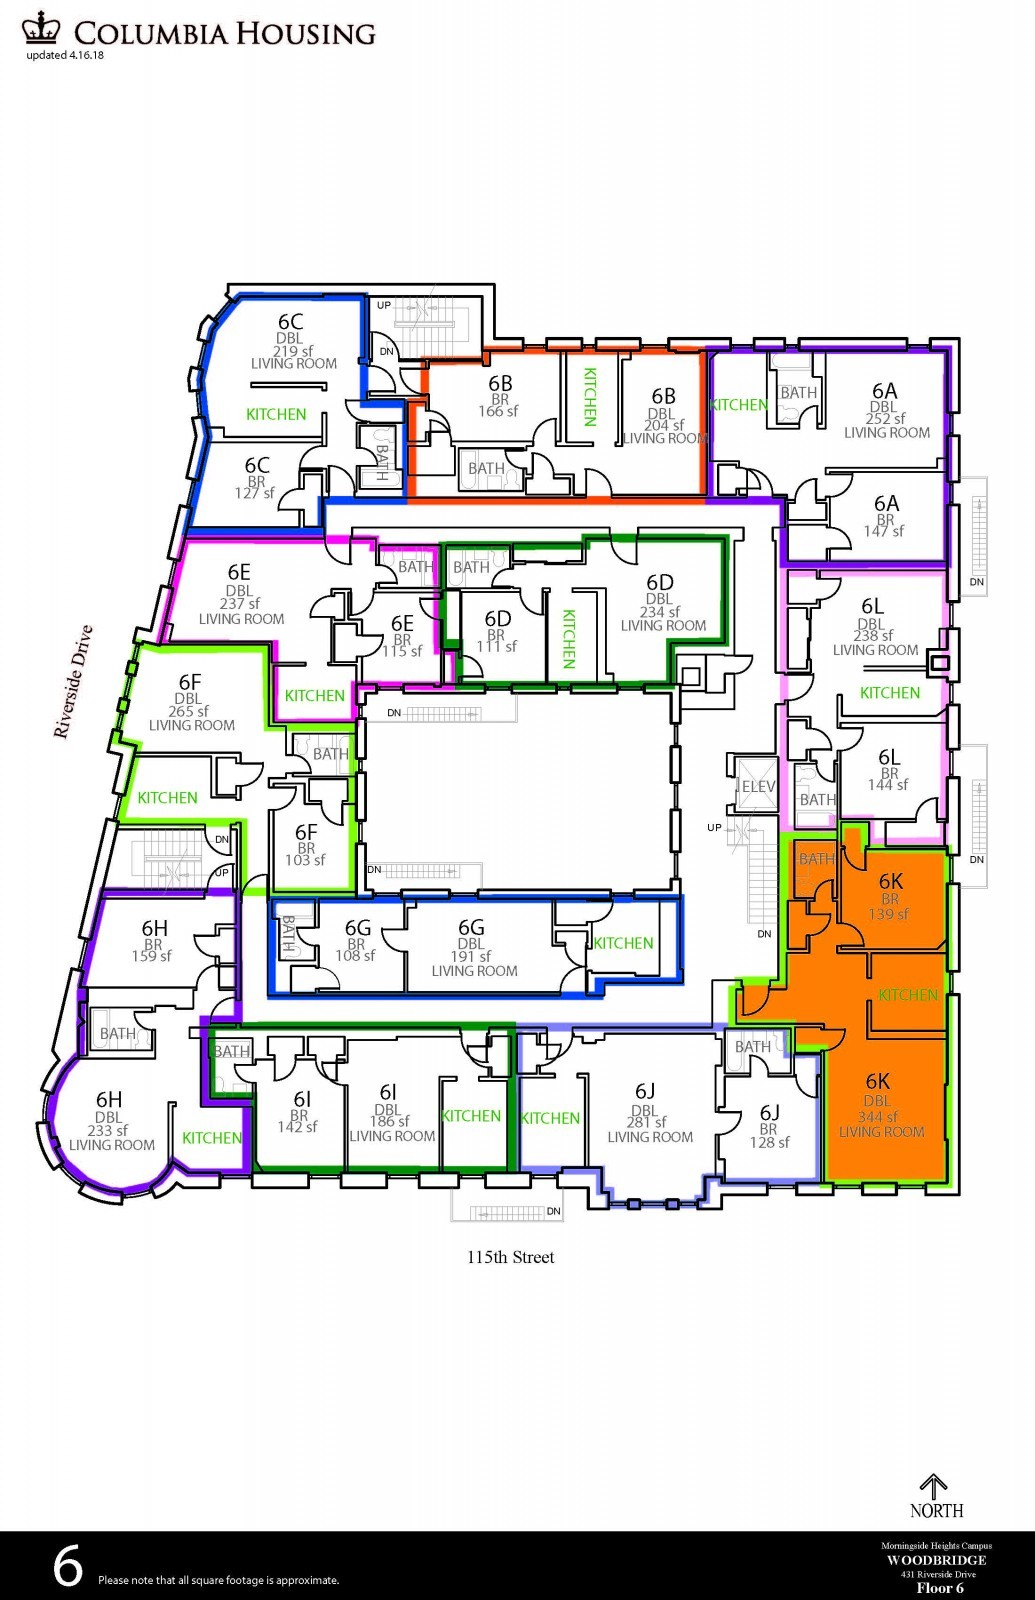 Floor Plan - Woodbridge Hall Sixth Floor